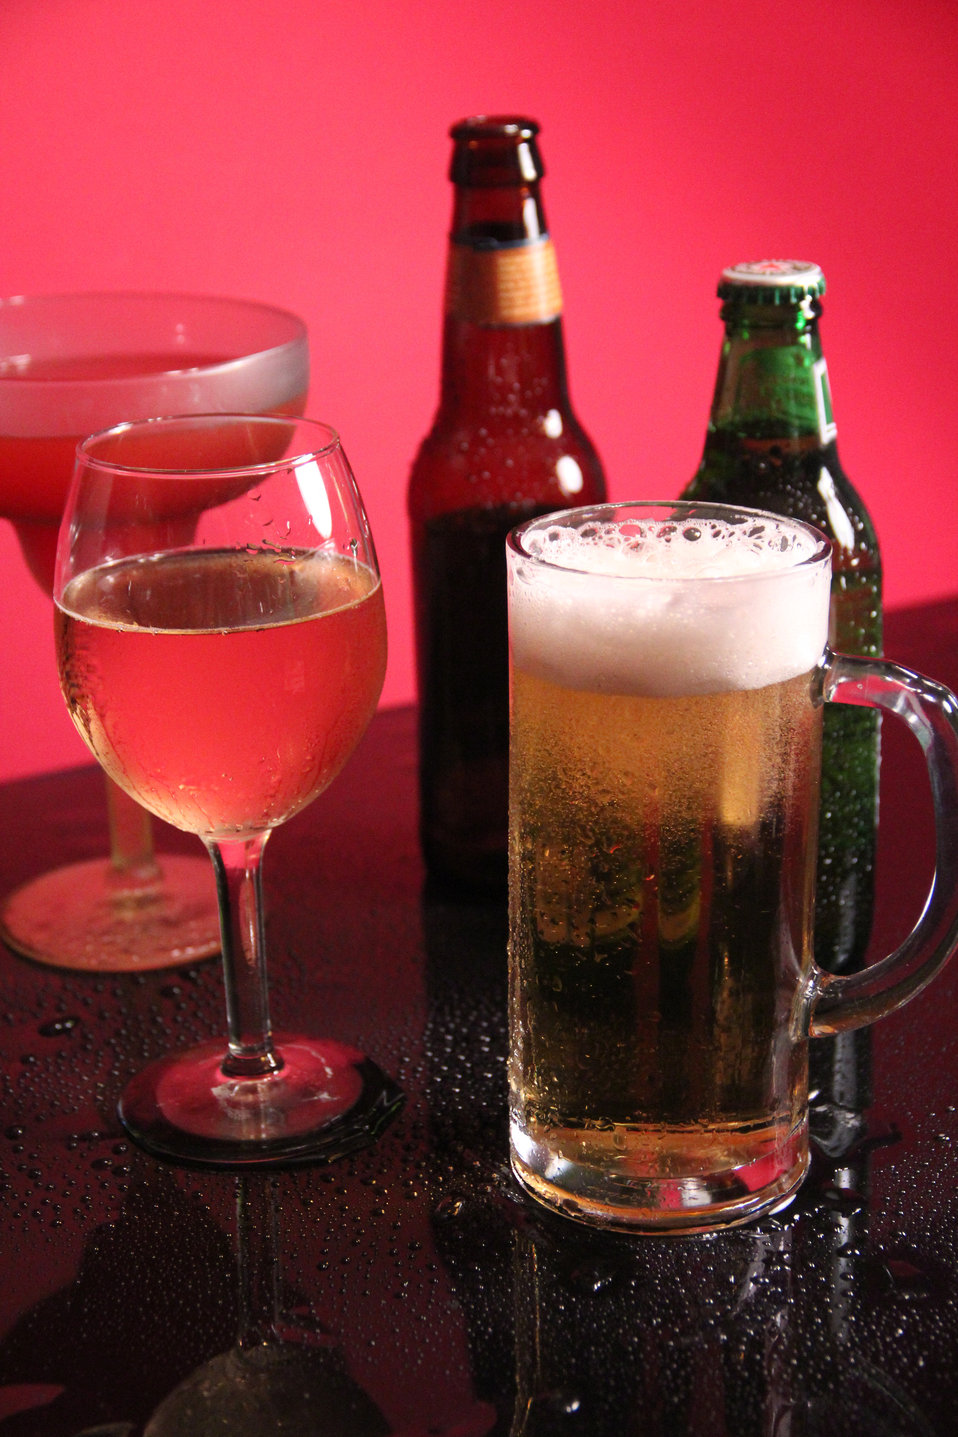 This image depicts a mixed drink and beer still life, which included one unopened, and one opened bottle of beer, a mug of freshly poured be